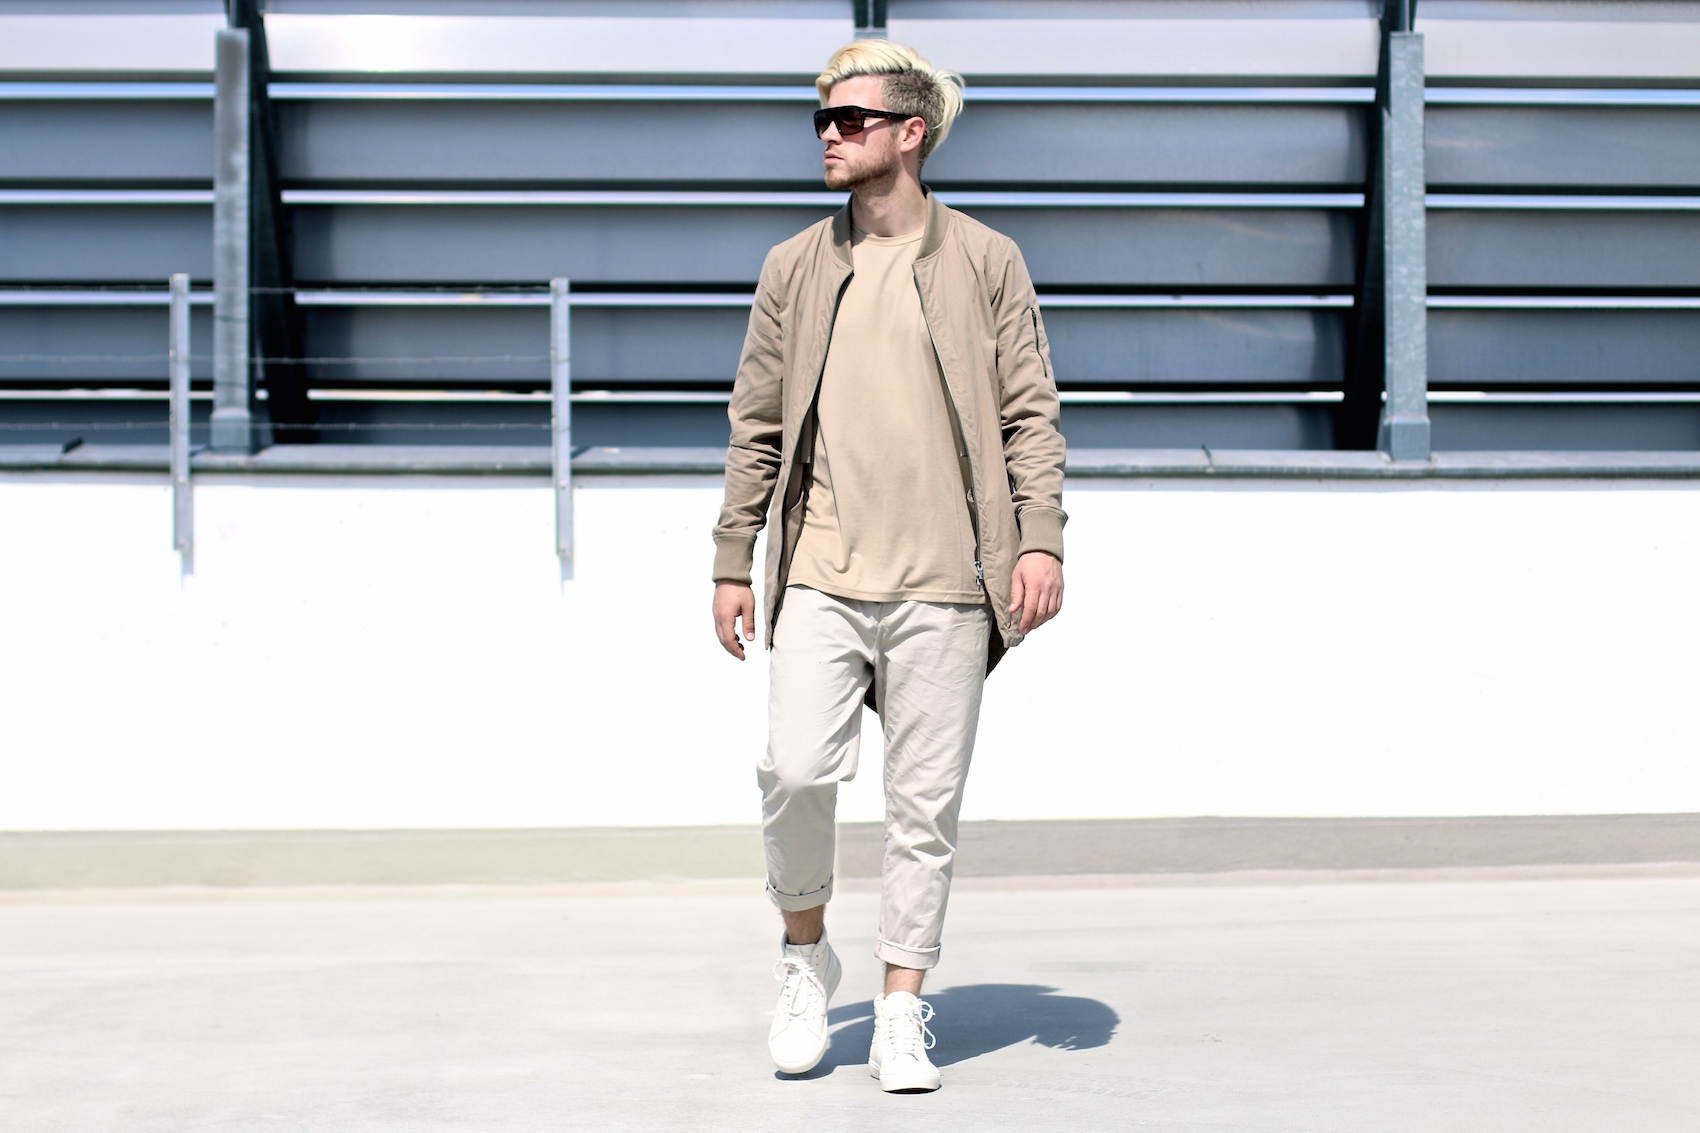 outfit combining neutral colors bomber parka chinos